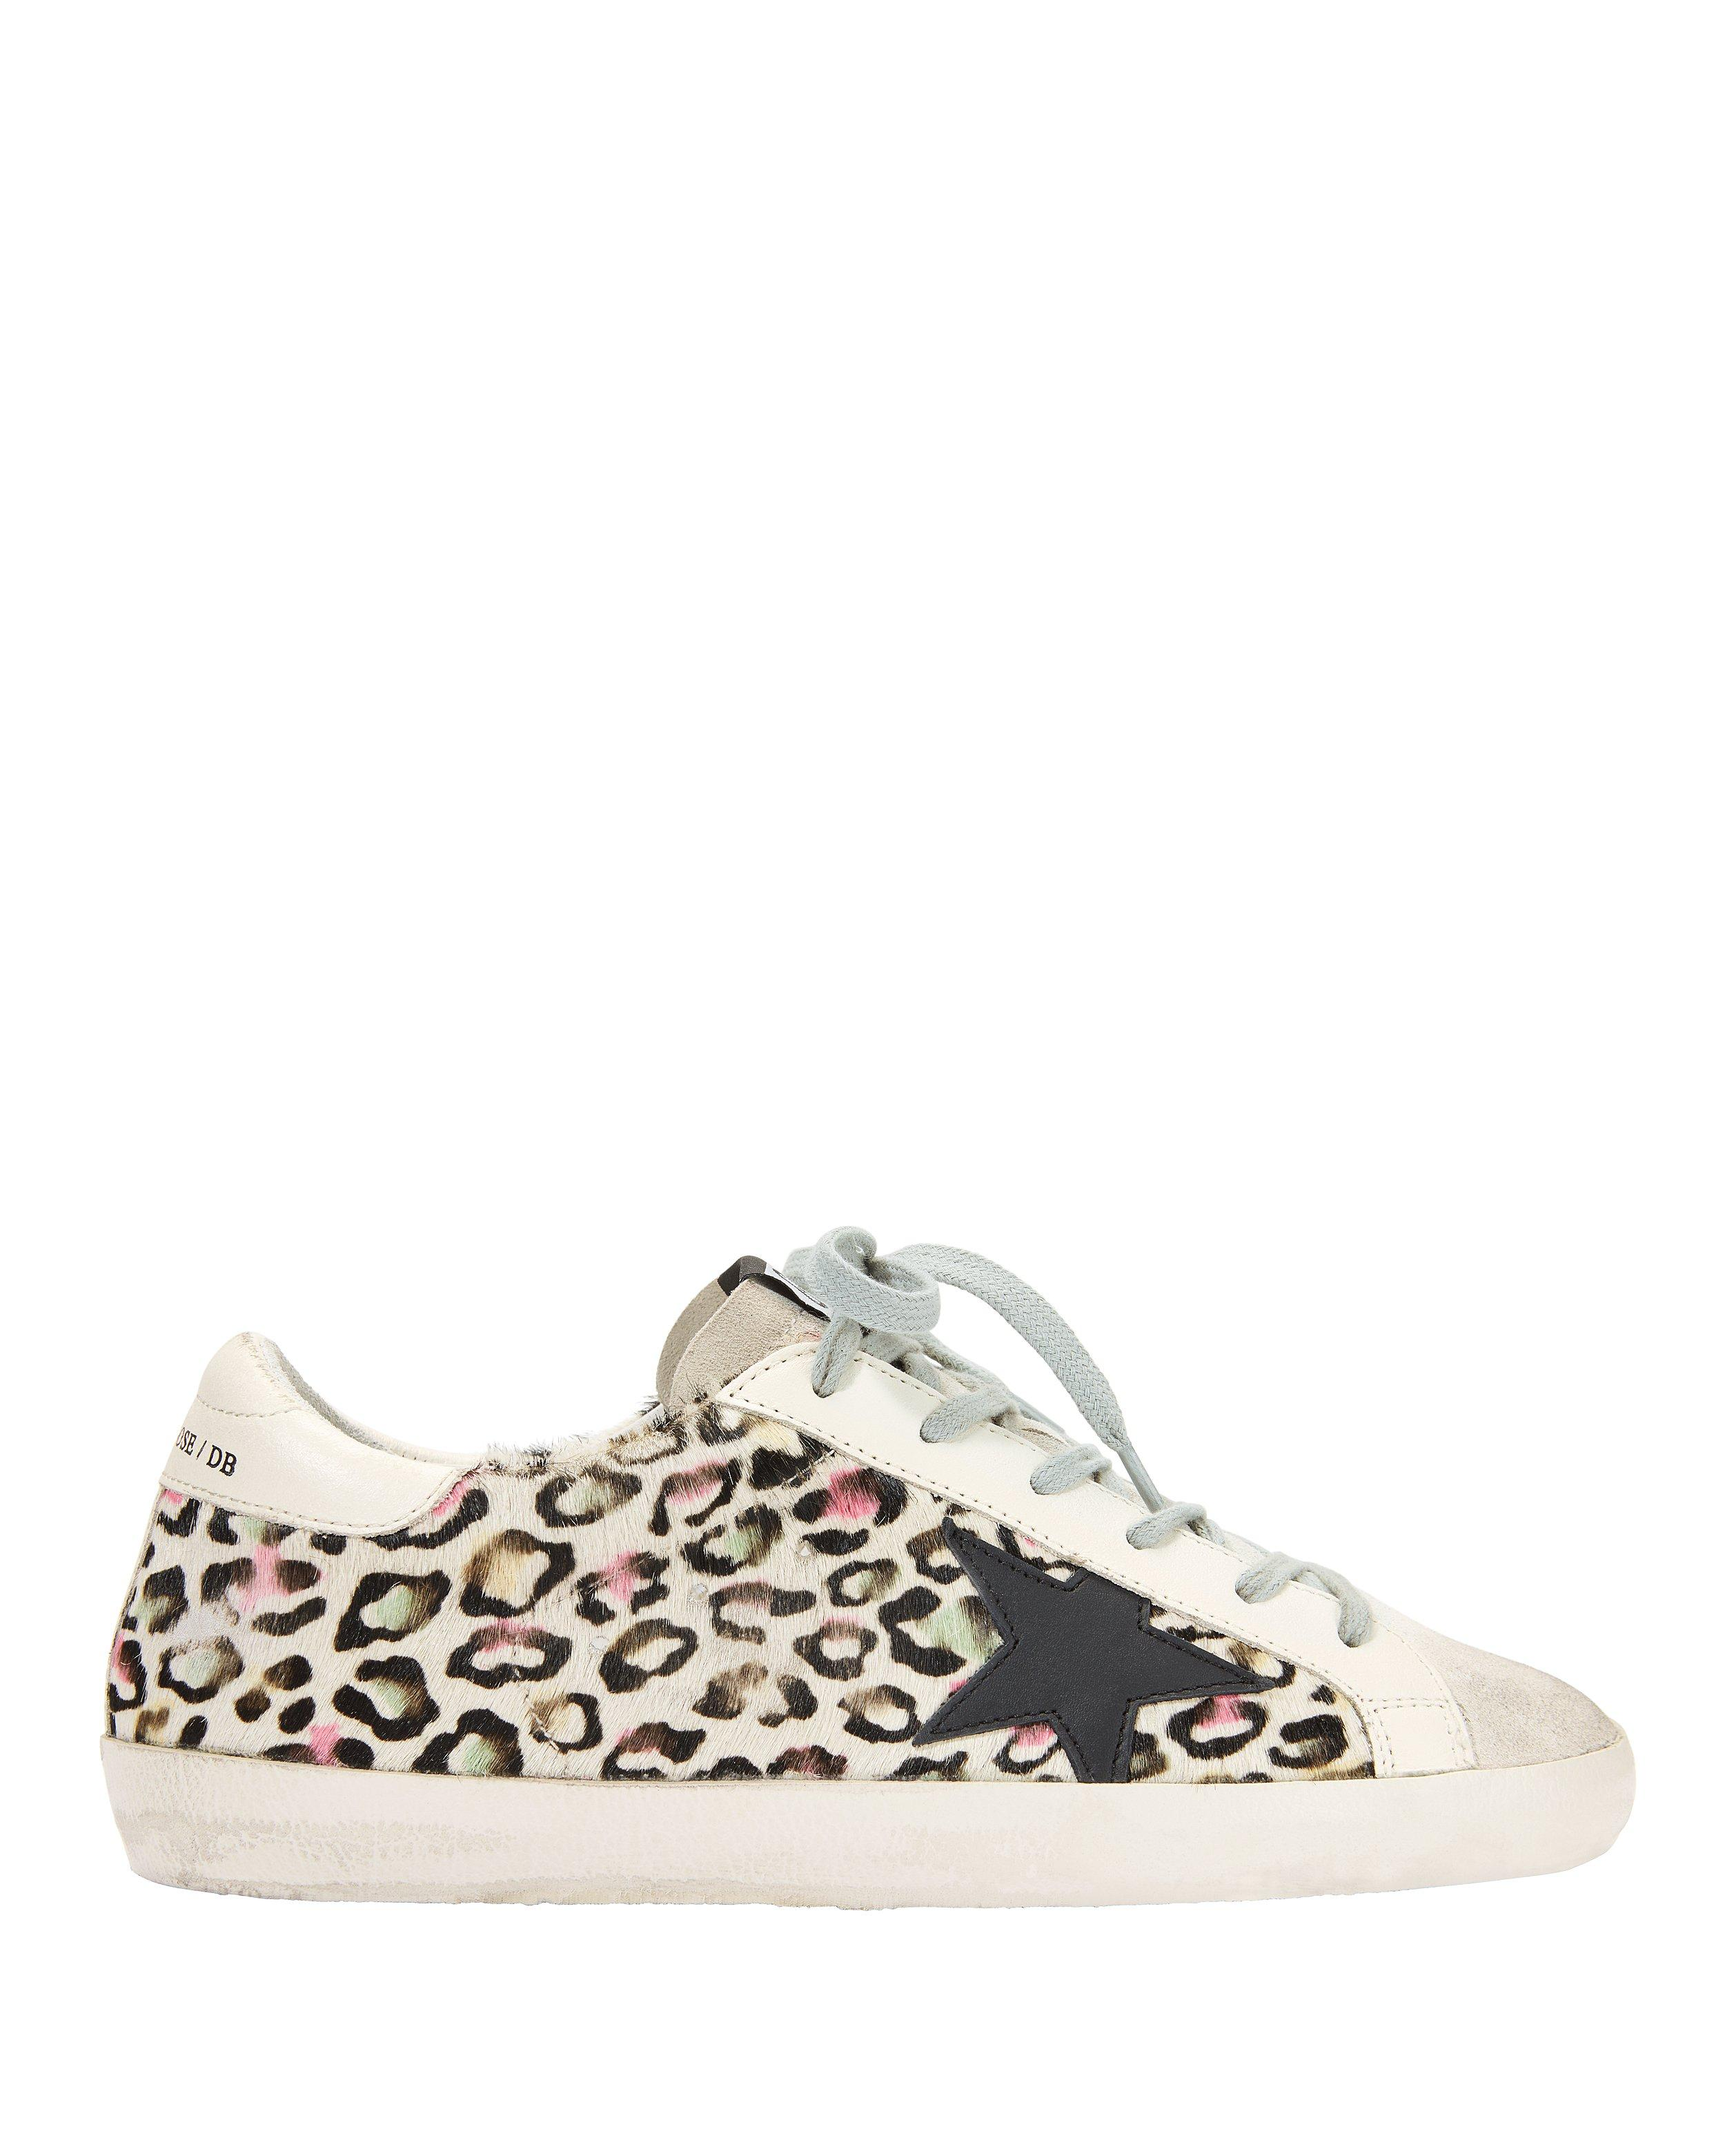 cheap for discount 53dfc 9fae8 Golden Goose Deluxe Brand. Women s Superstar Animal Print Sneakers